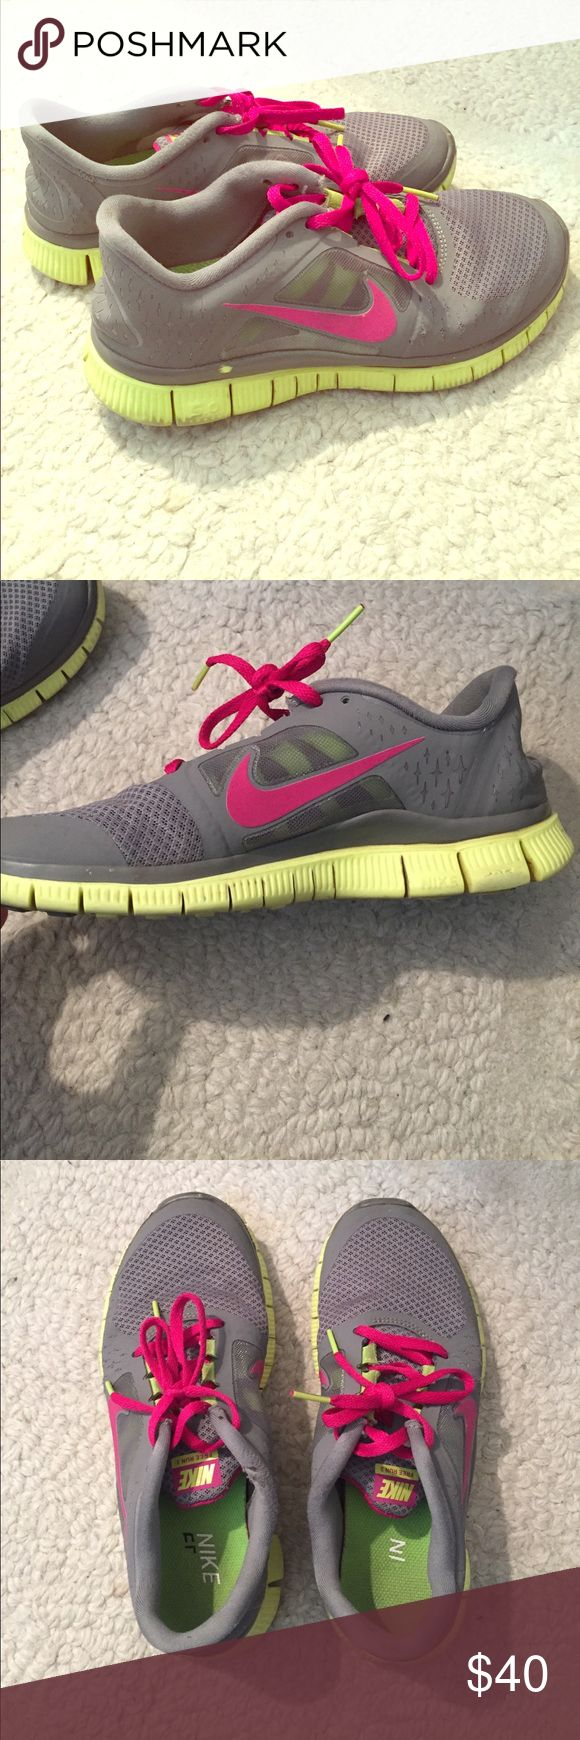 Nike Free Run 3 Nike free runs, good condition, worn (as pictured), left shoe has slight wear near laces, Nike Shoes Sneakers